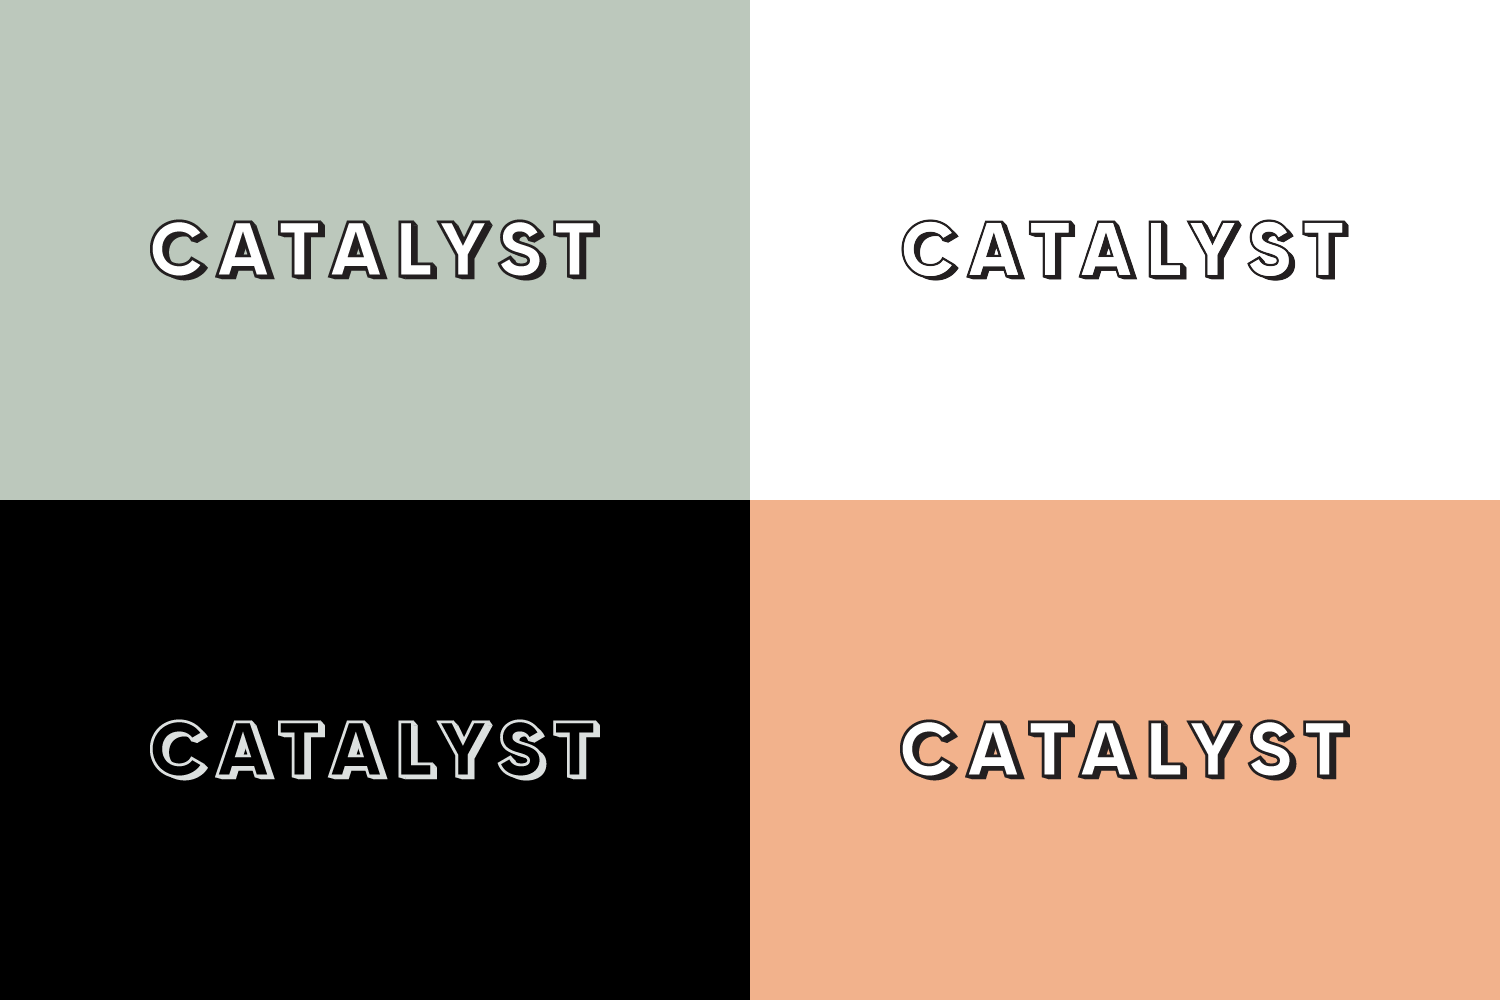 Catalyst - Logo design on different colour backgrounds